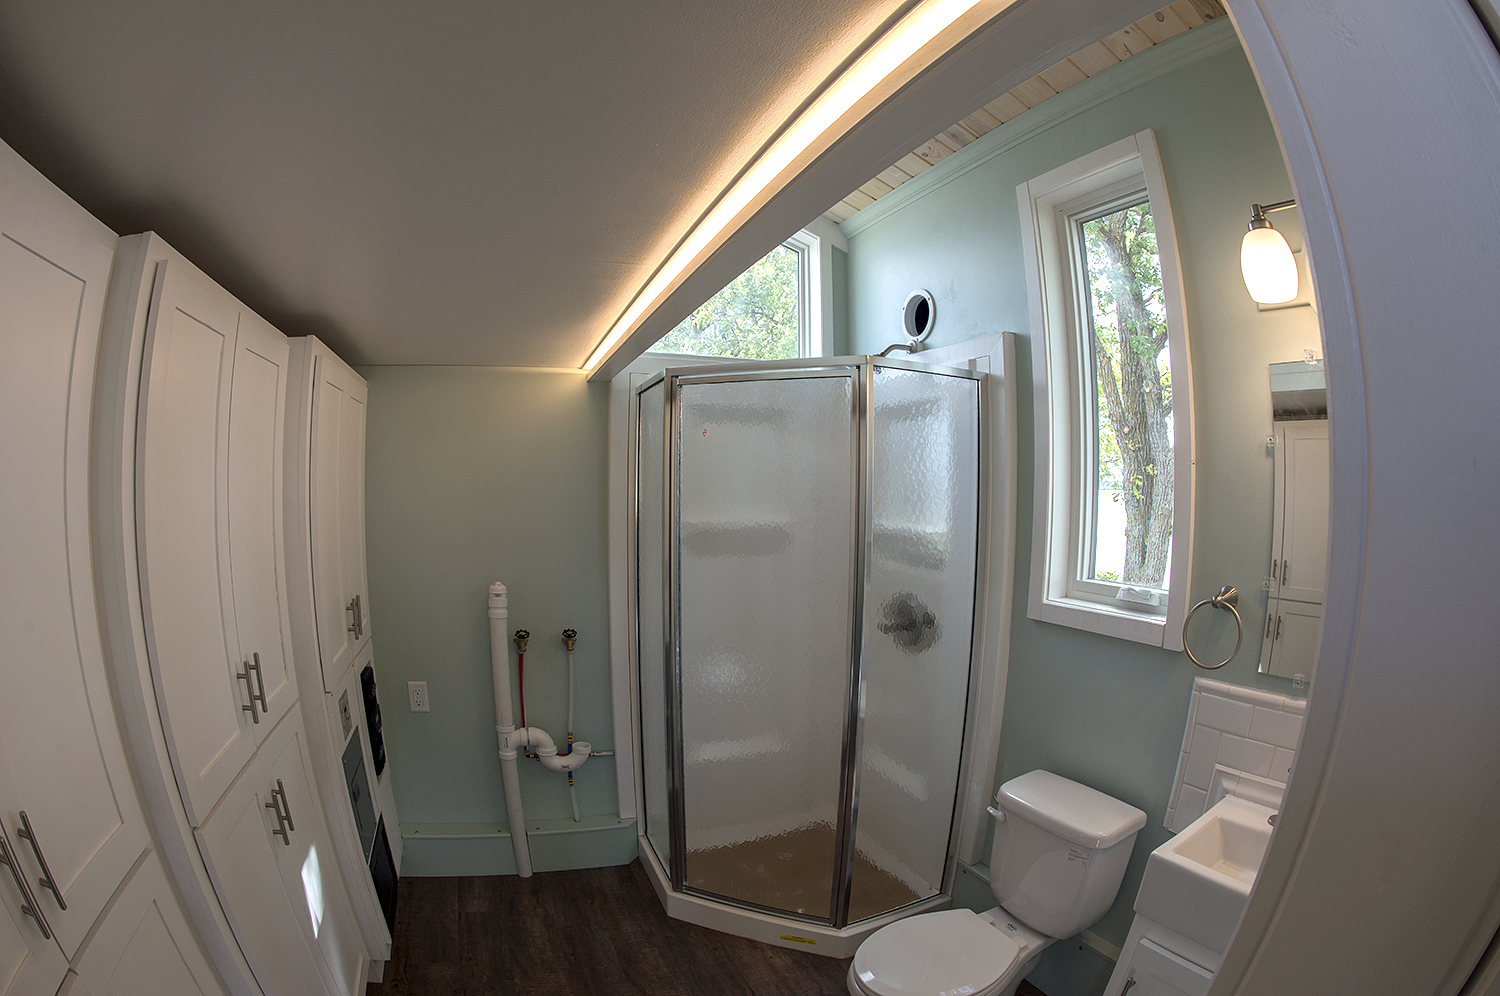 """Bemidji State University tiny house Three-quarter bathroom with 32"""" Stylemate Neo Angle shower enclosure, ProFlo flush toilet prewired for an optional composting toilet and full-height storage cabinets."""